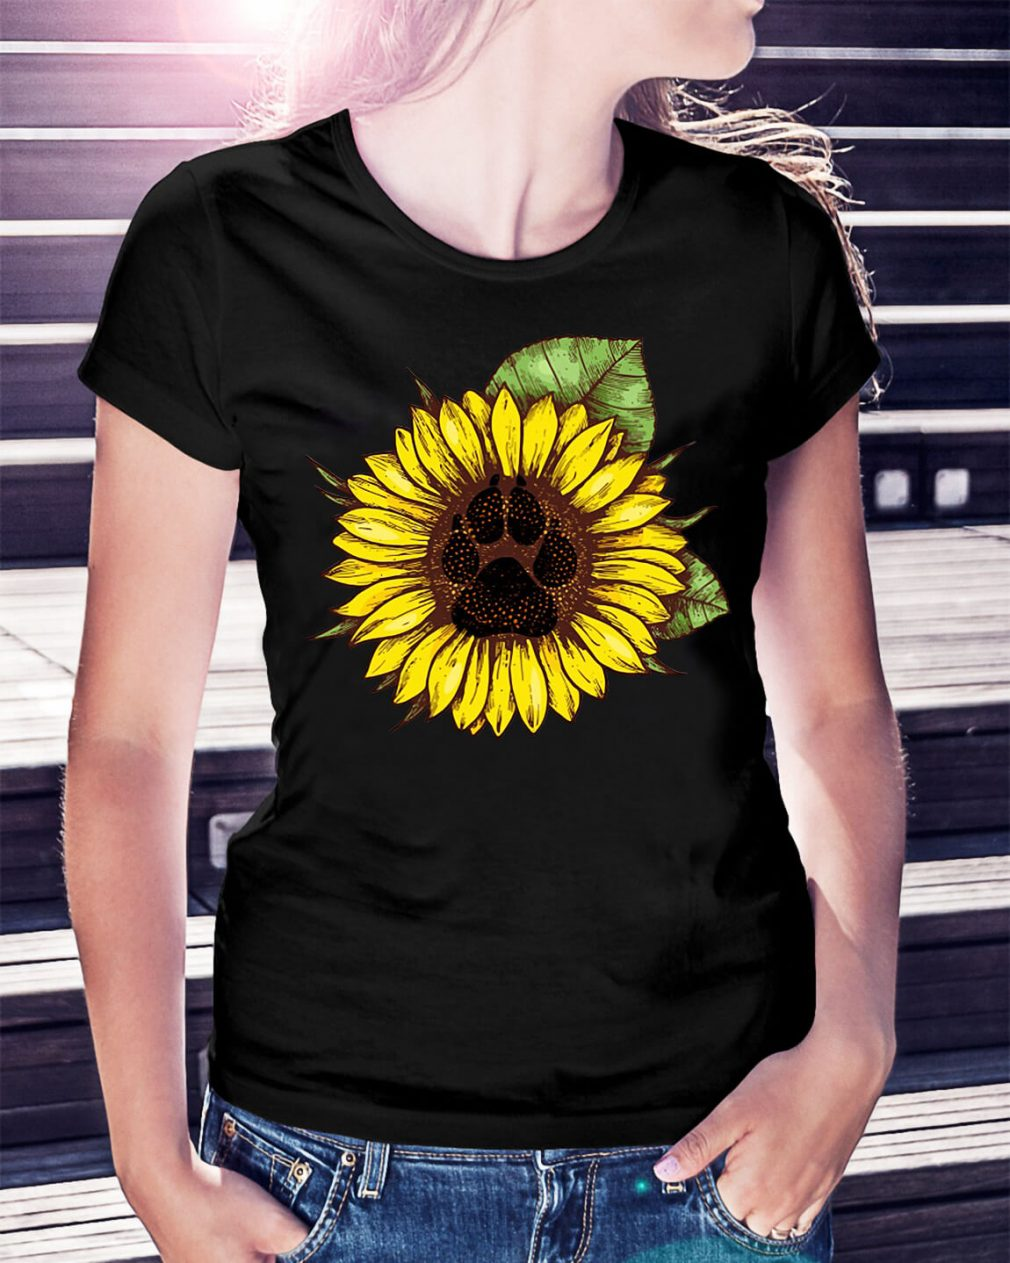 Paw dog sunflower shirt